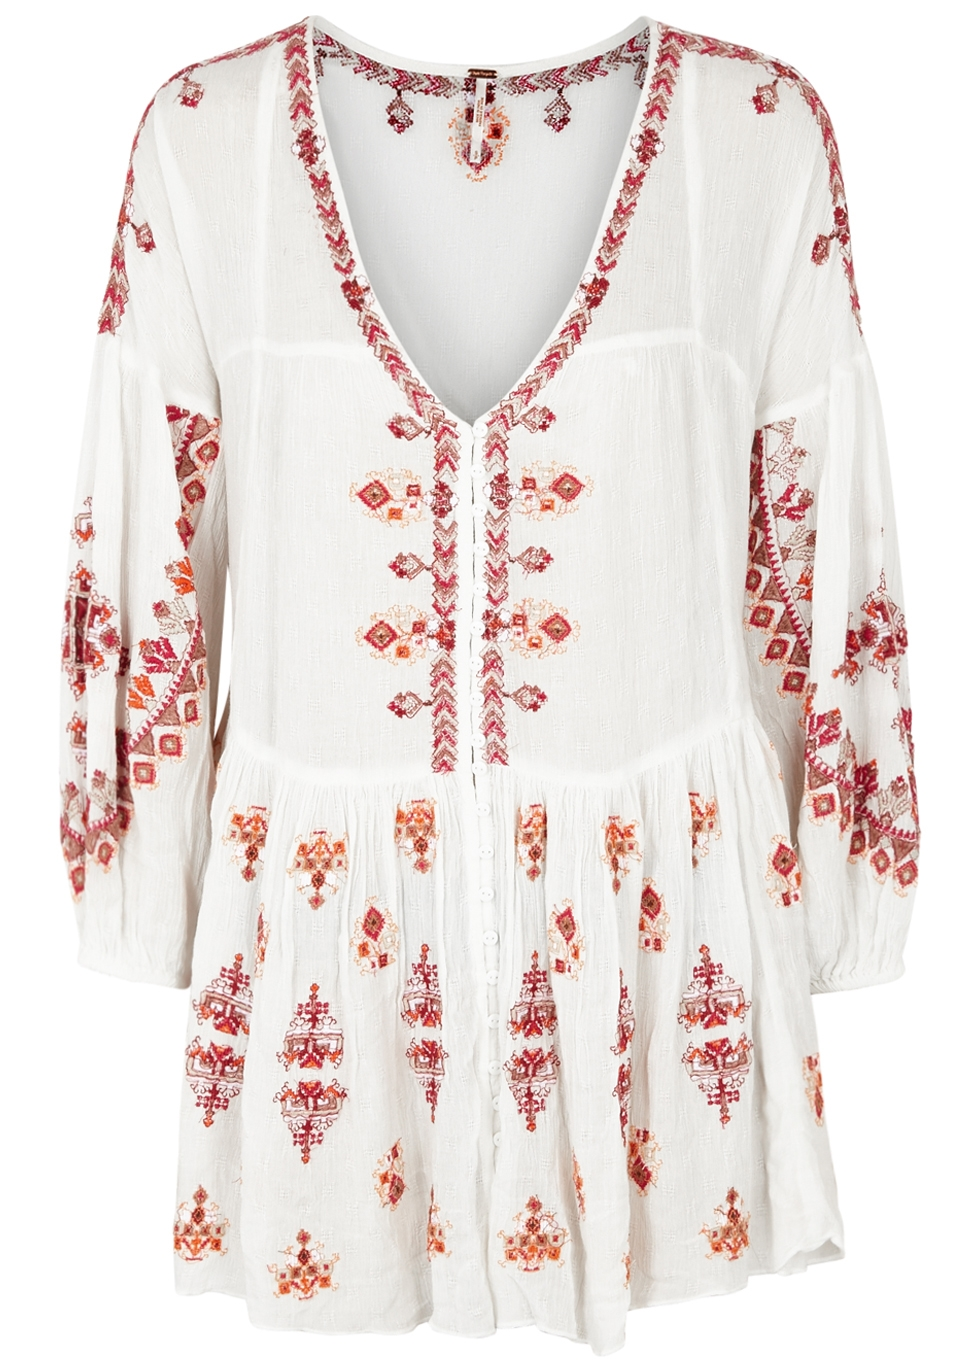 Arianna Cream Embroidered Rayon Top, White And Red